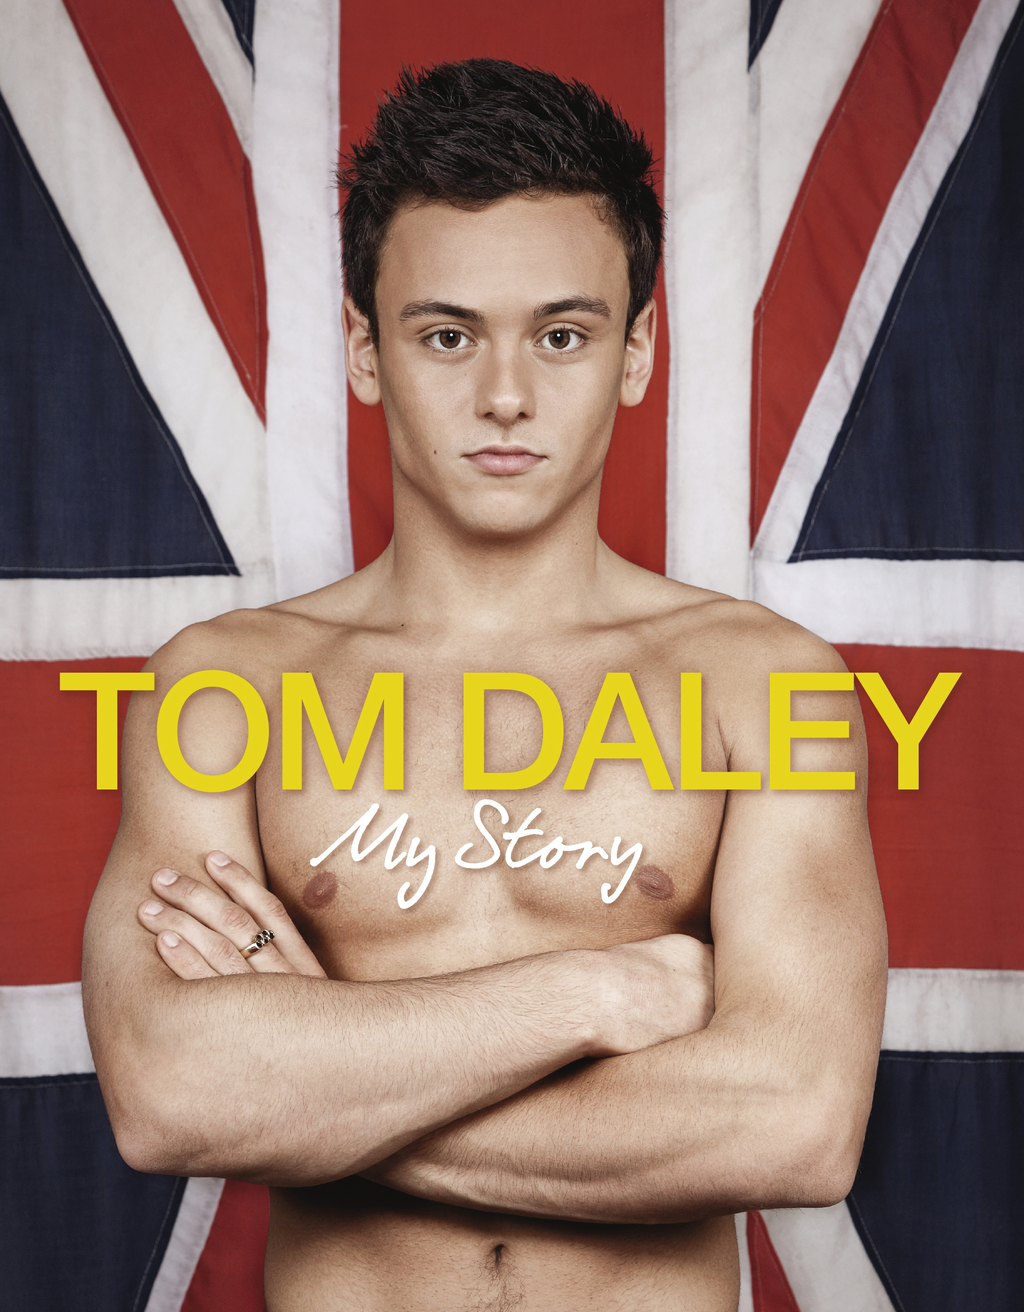 My Story By: Tom Daley